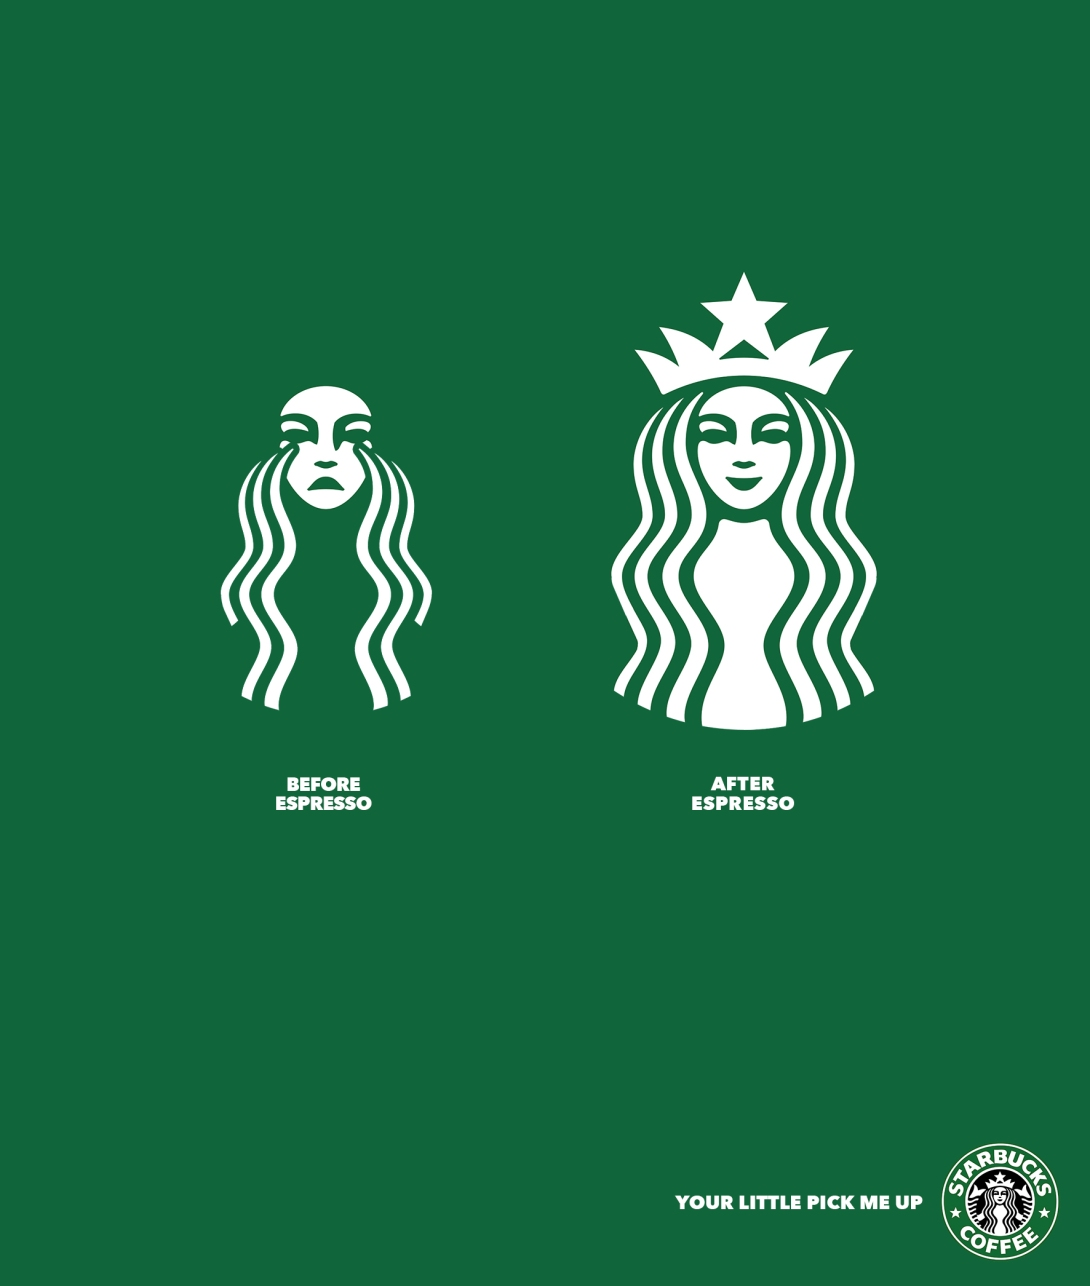 advertising concept - before and after espresso